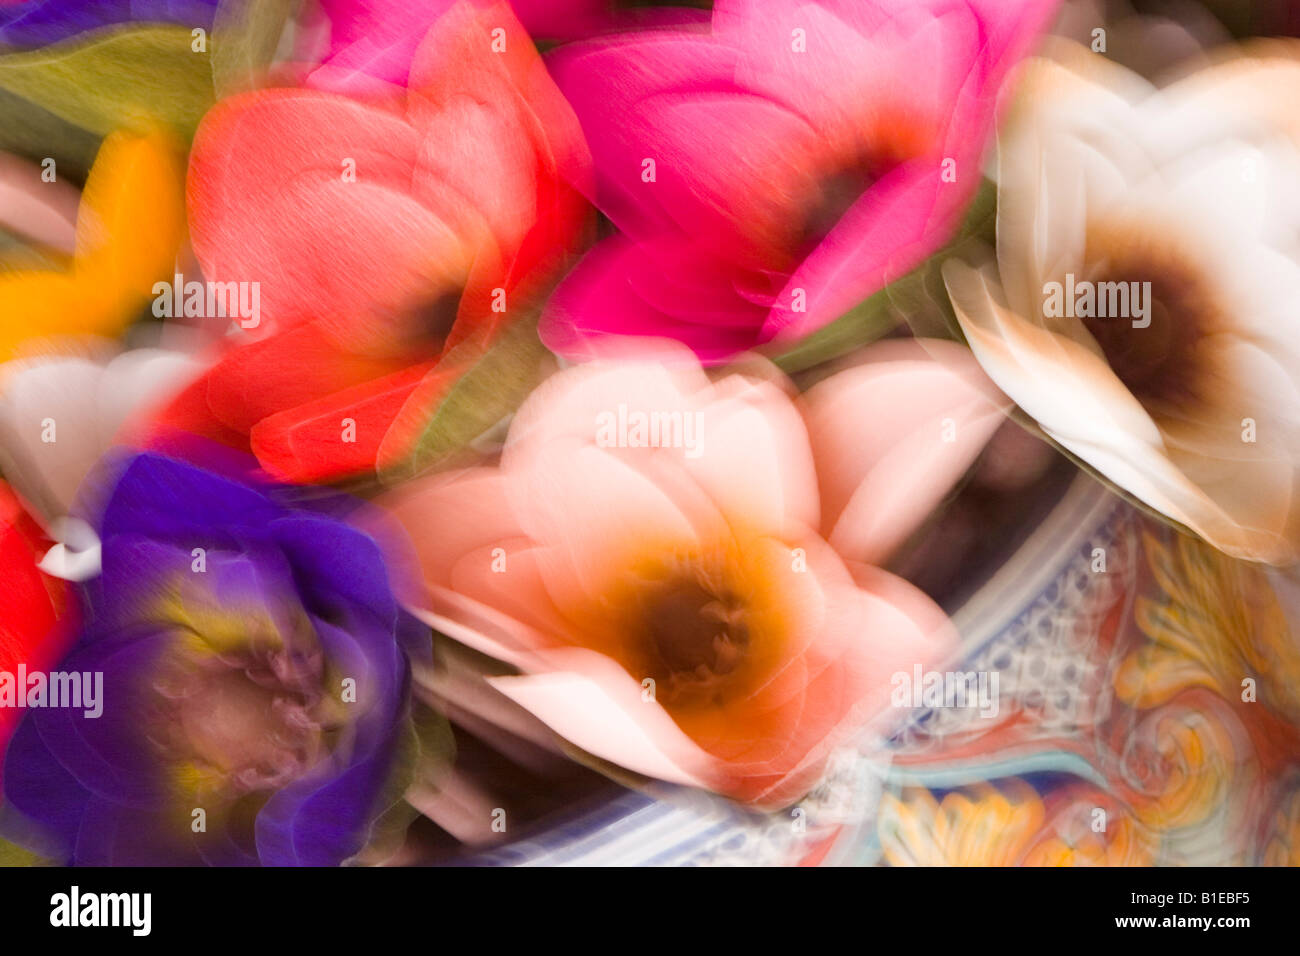 Abstract design silk flowers motion stock photos abstract design abstract design of silk flowers with motion blur usa stock image mightylinksfo